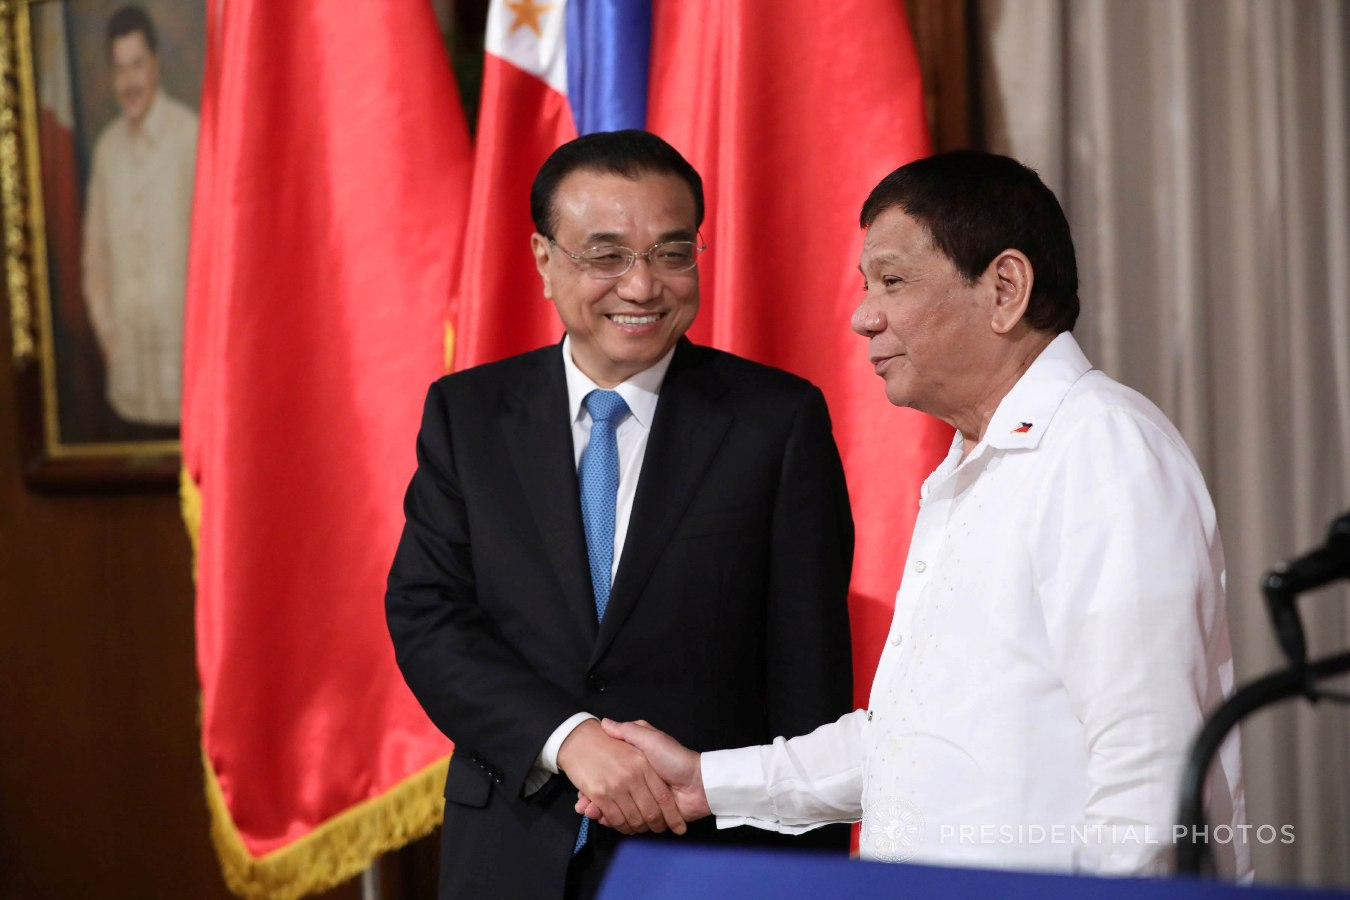 President Rodrigo Roa Duterte and People's Republic of China State Council Premier Li Keqiang share a light moment after they make their joint press statement following the signing ceremony of various memorandum of understanding (MOUs) in Malacañan Palace on November 15, 2017. ROBINSON NIÑAL JR./PRESIDENTIAL PHOTO